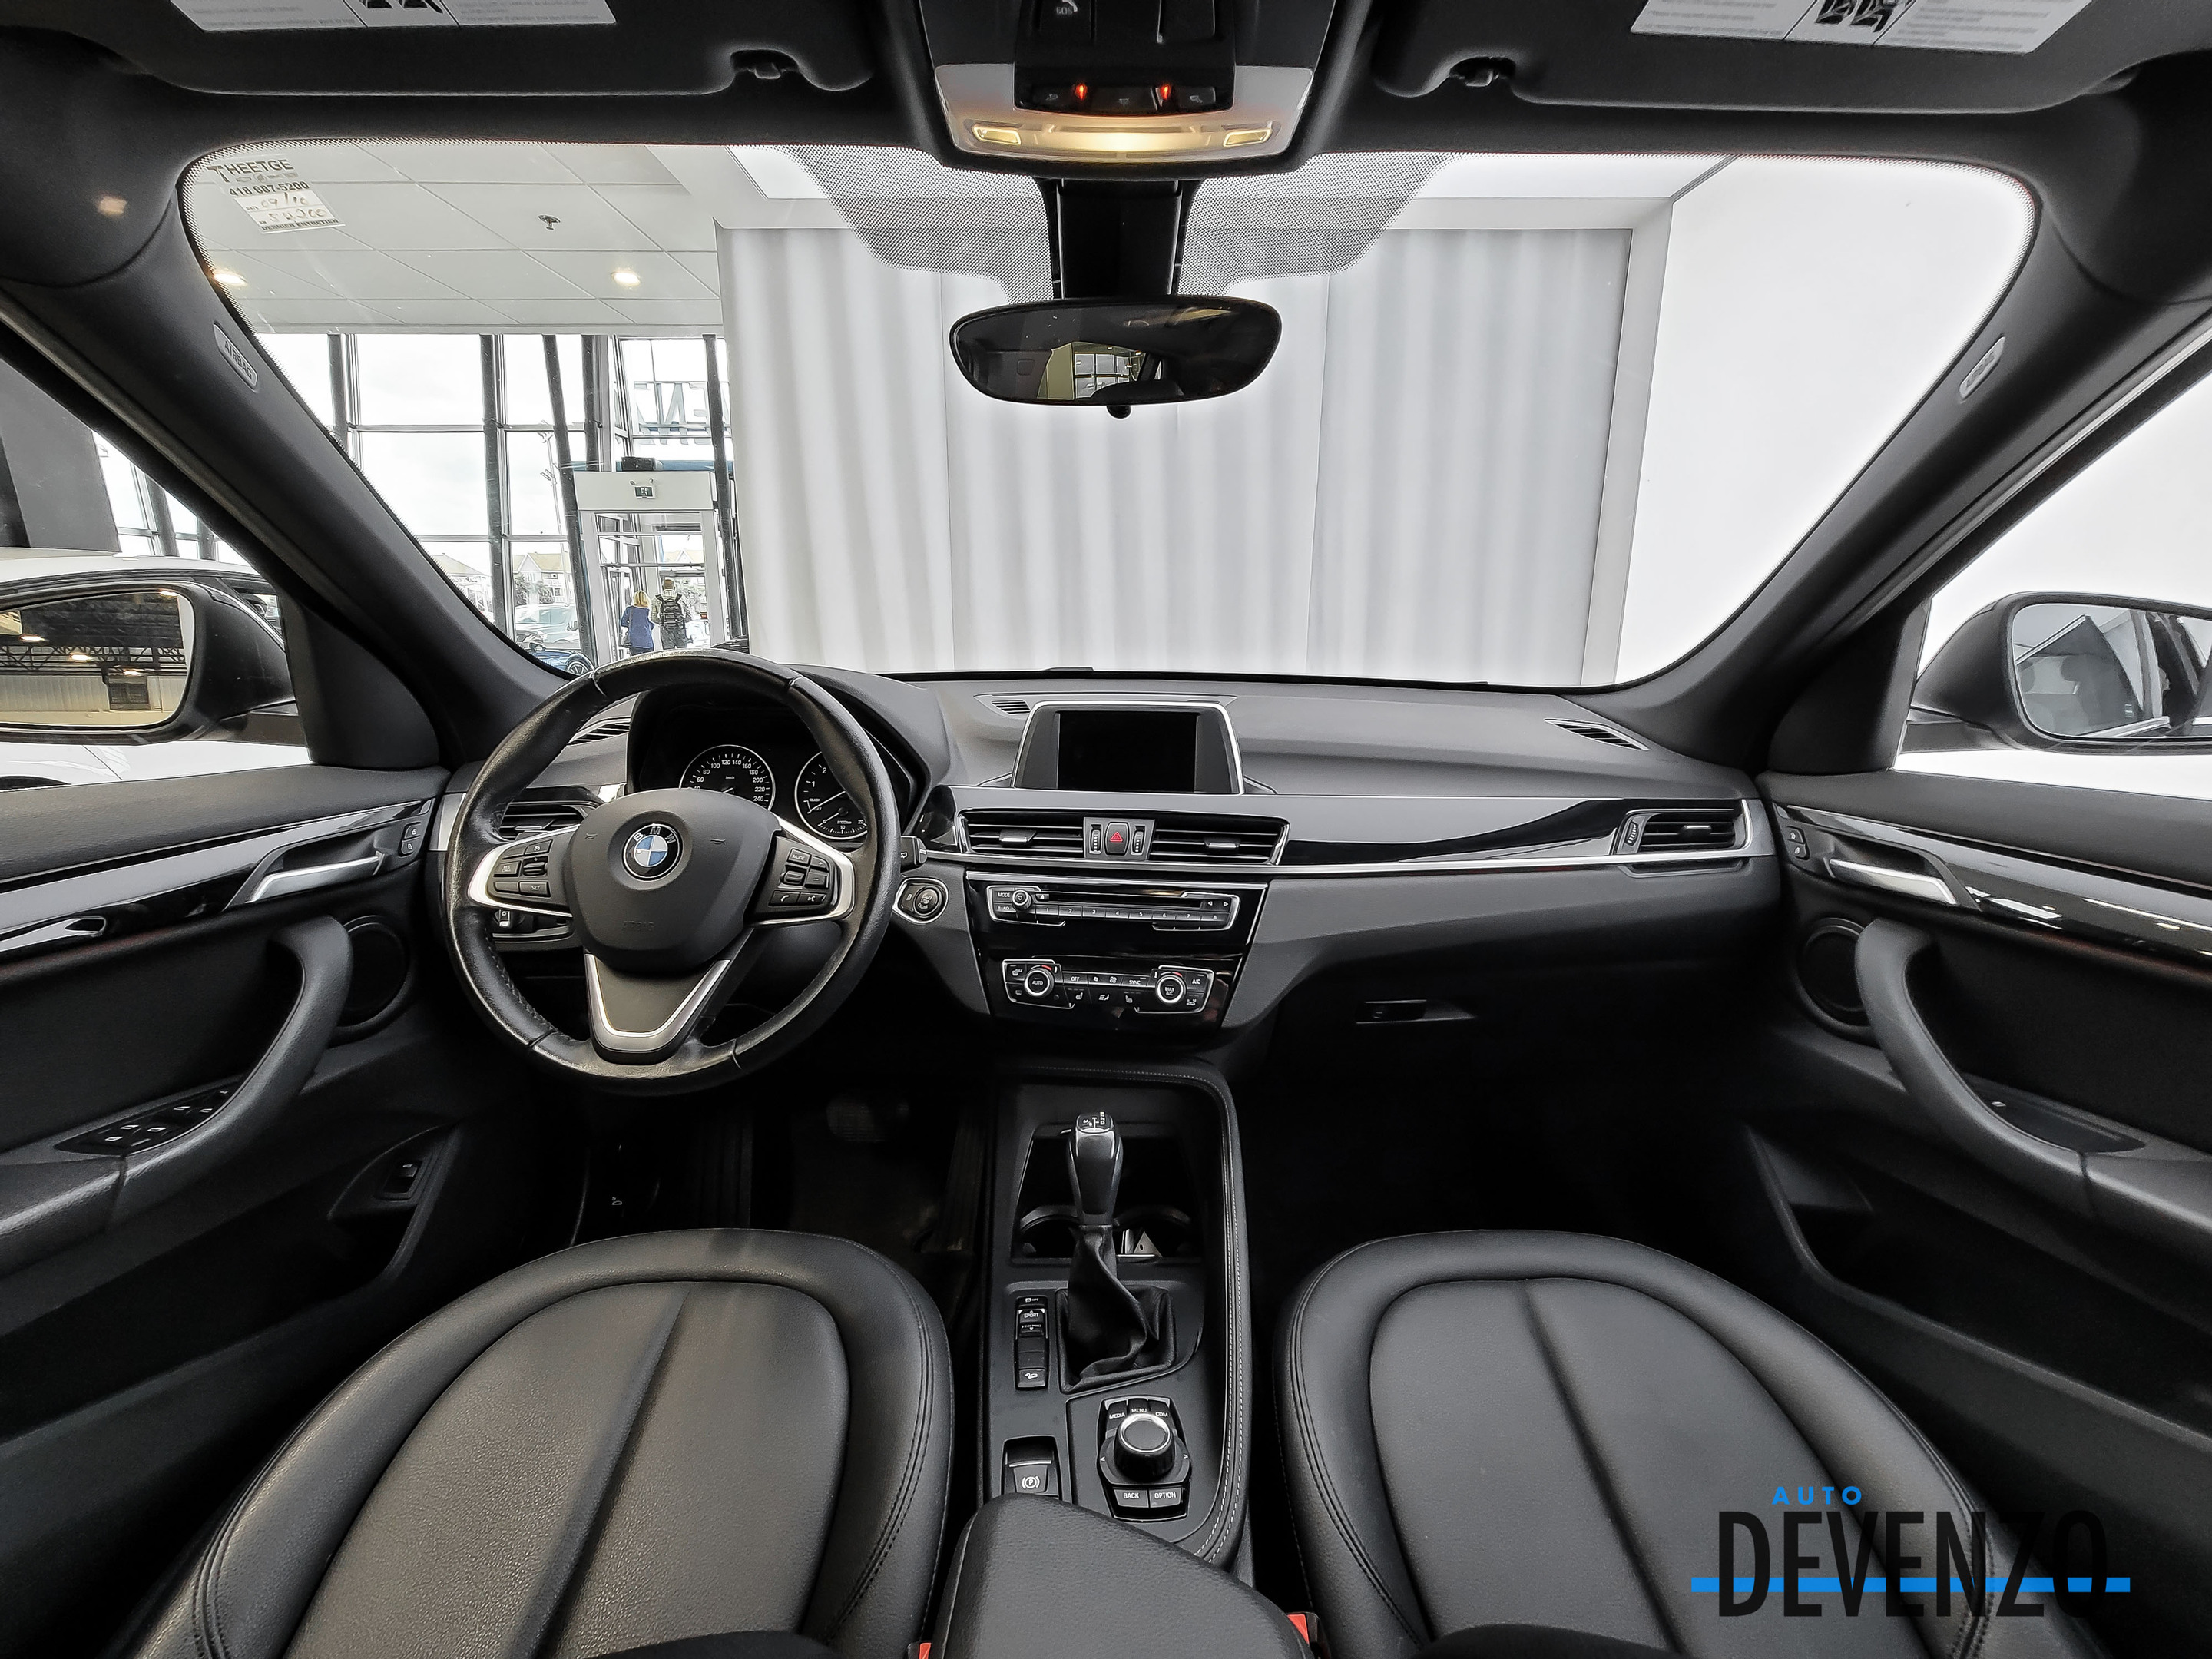 2018 BMW X1 xDrive28i Sports Activity Vehicle complet